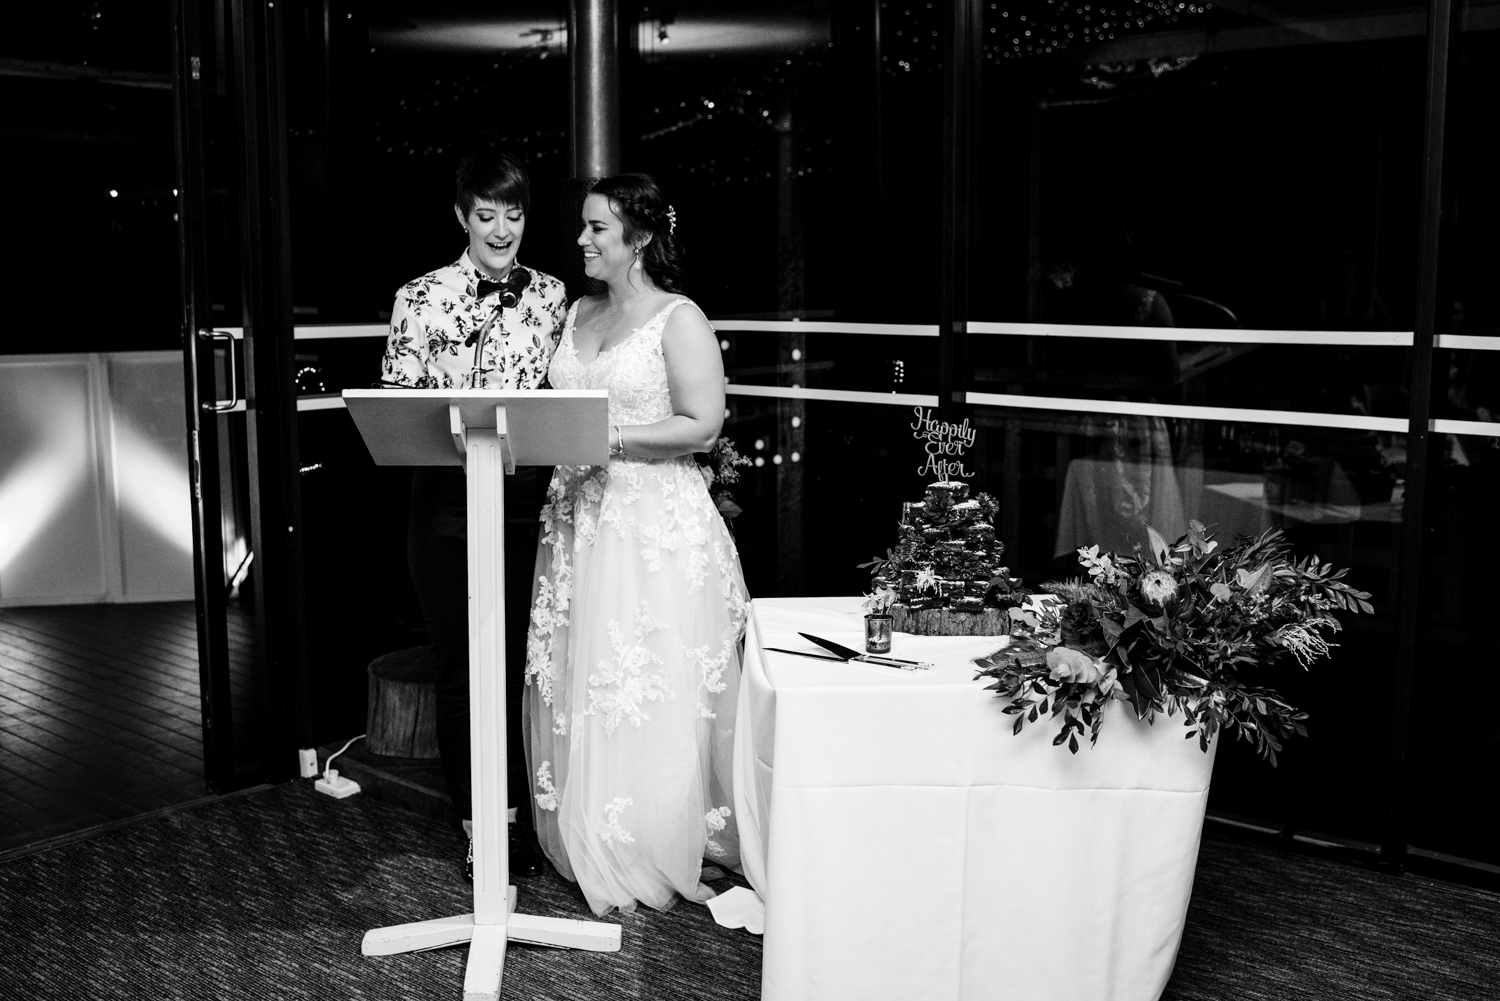 Brisbane Wedding Photographer | Walkabout Creek Photography-124.jpg